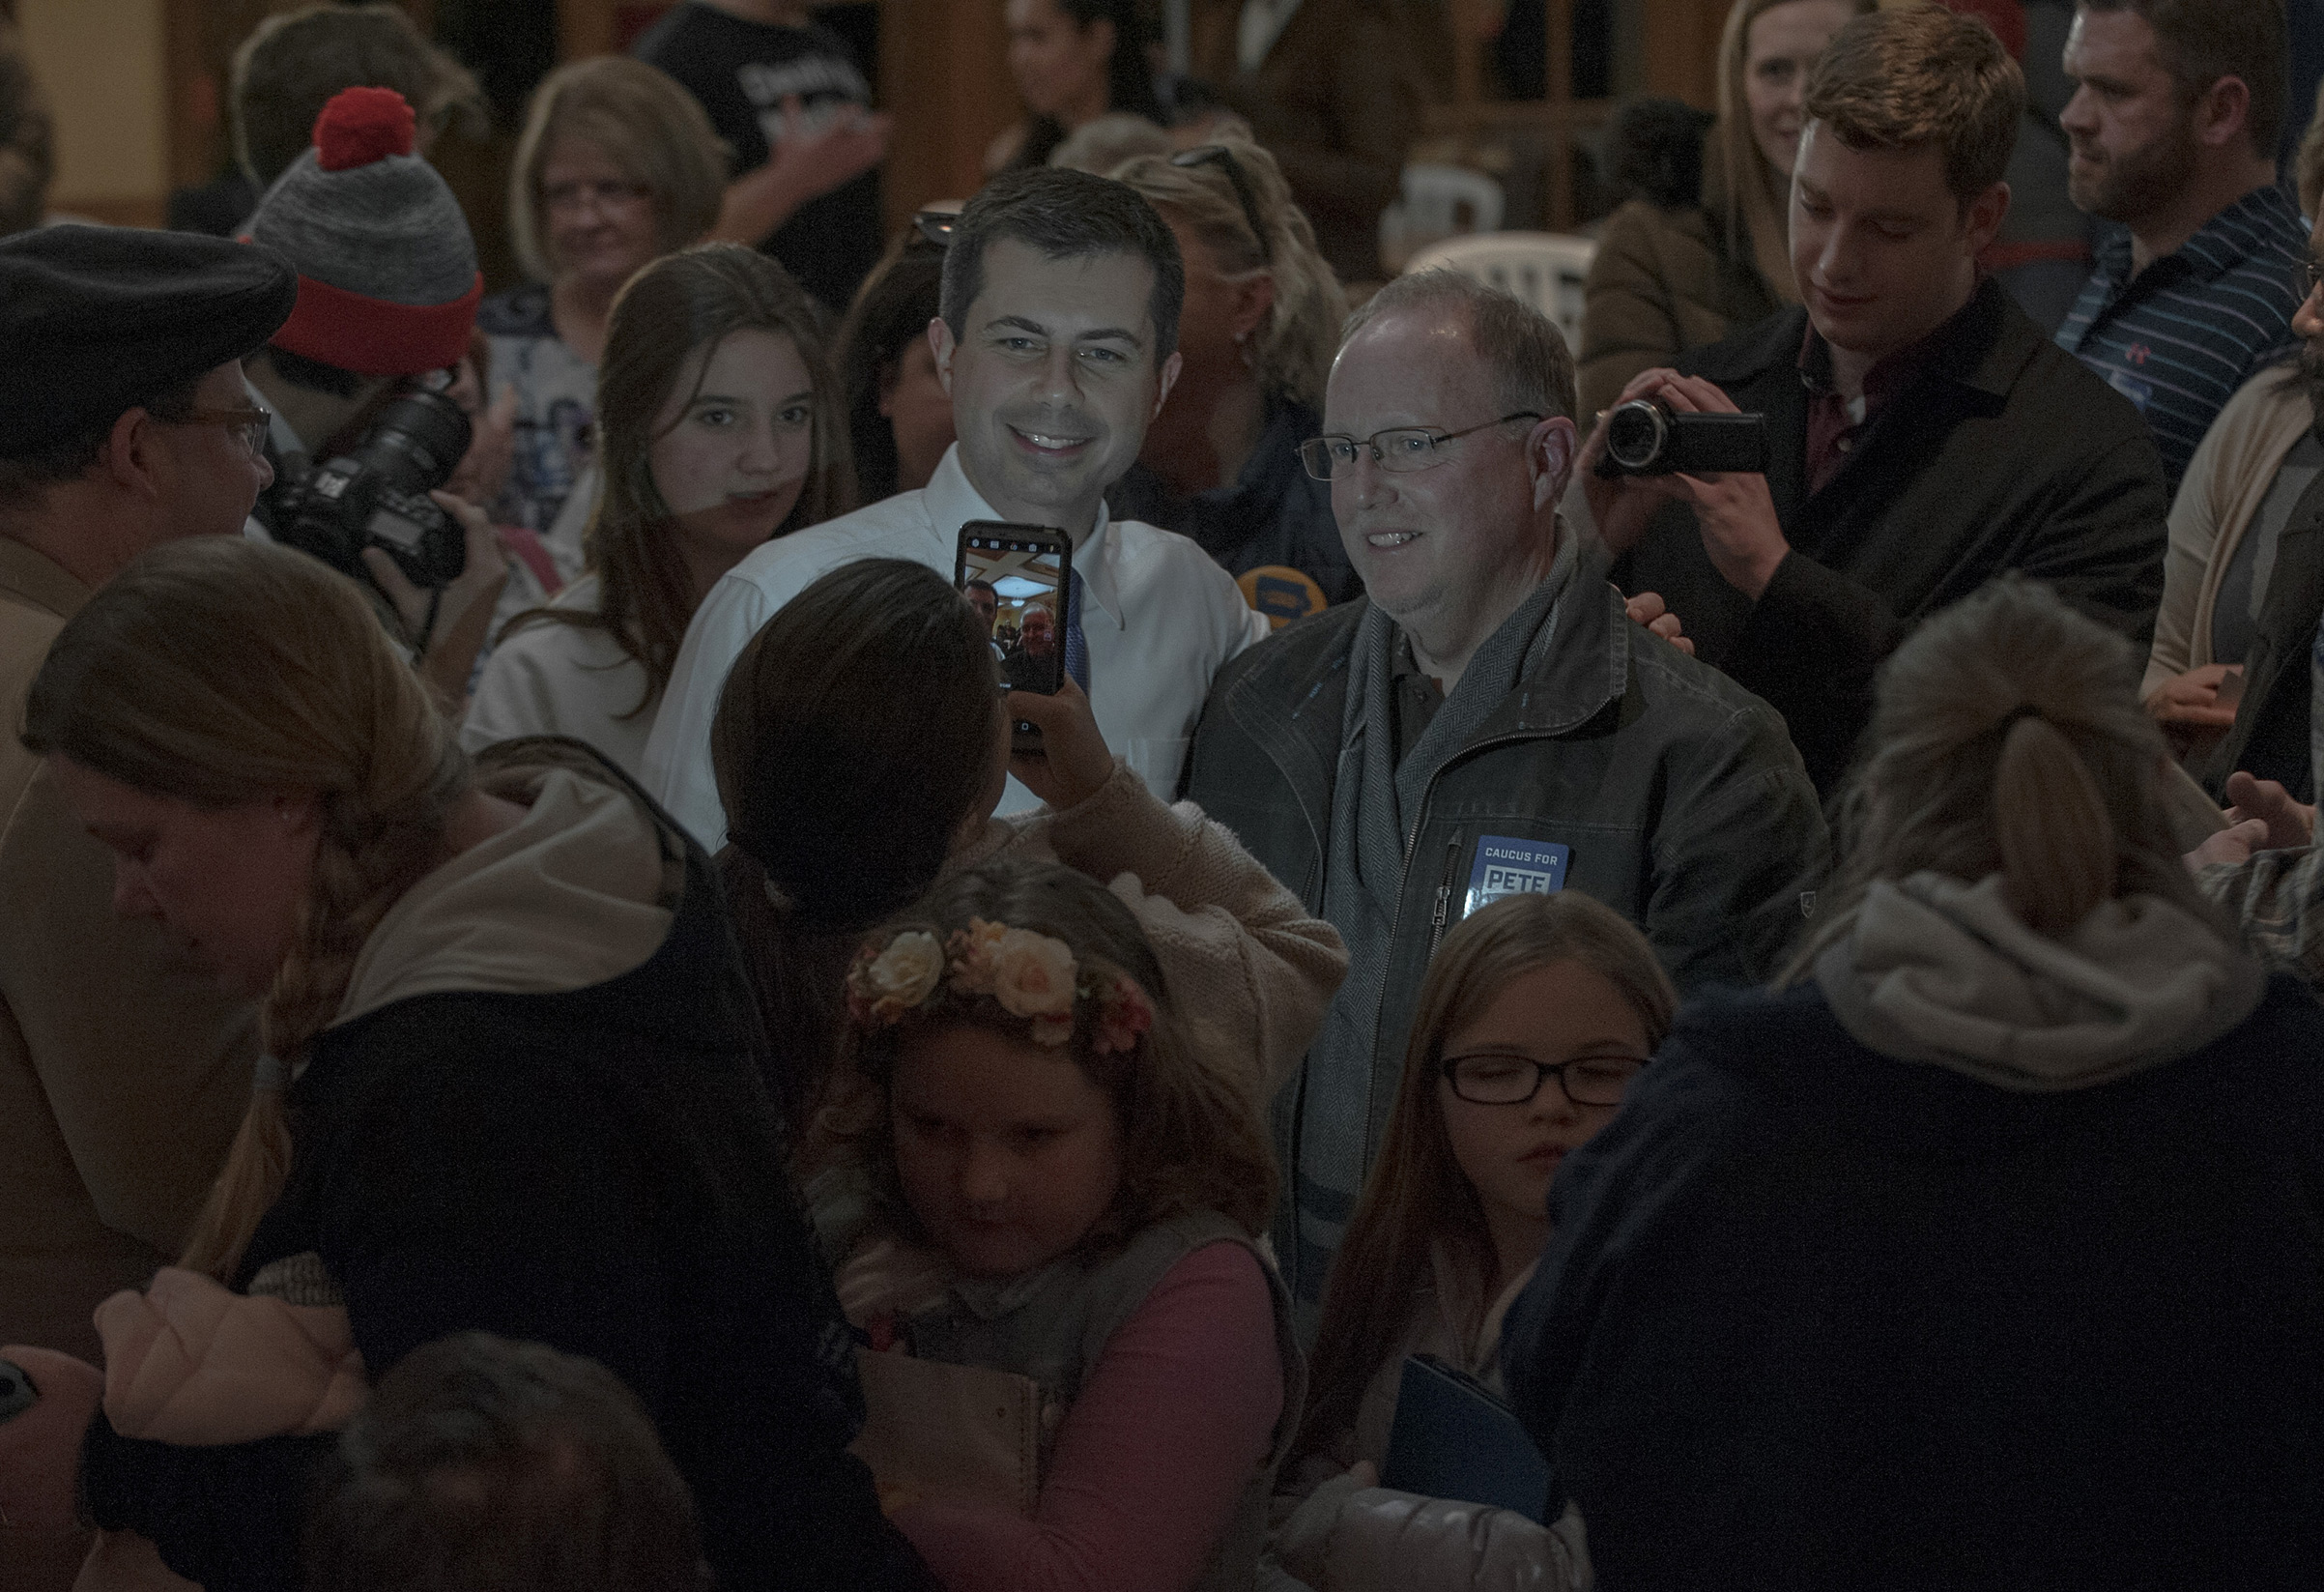 Buttigieg meets supporters at a Town Hall in Mason City, Iowa, on Jan. 29.